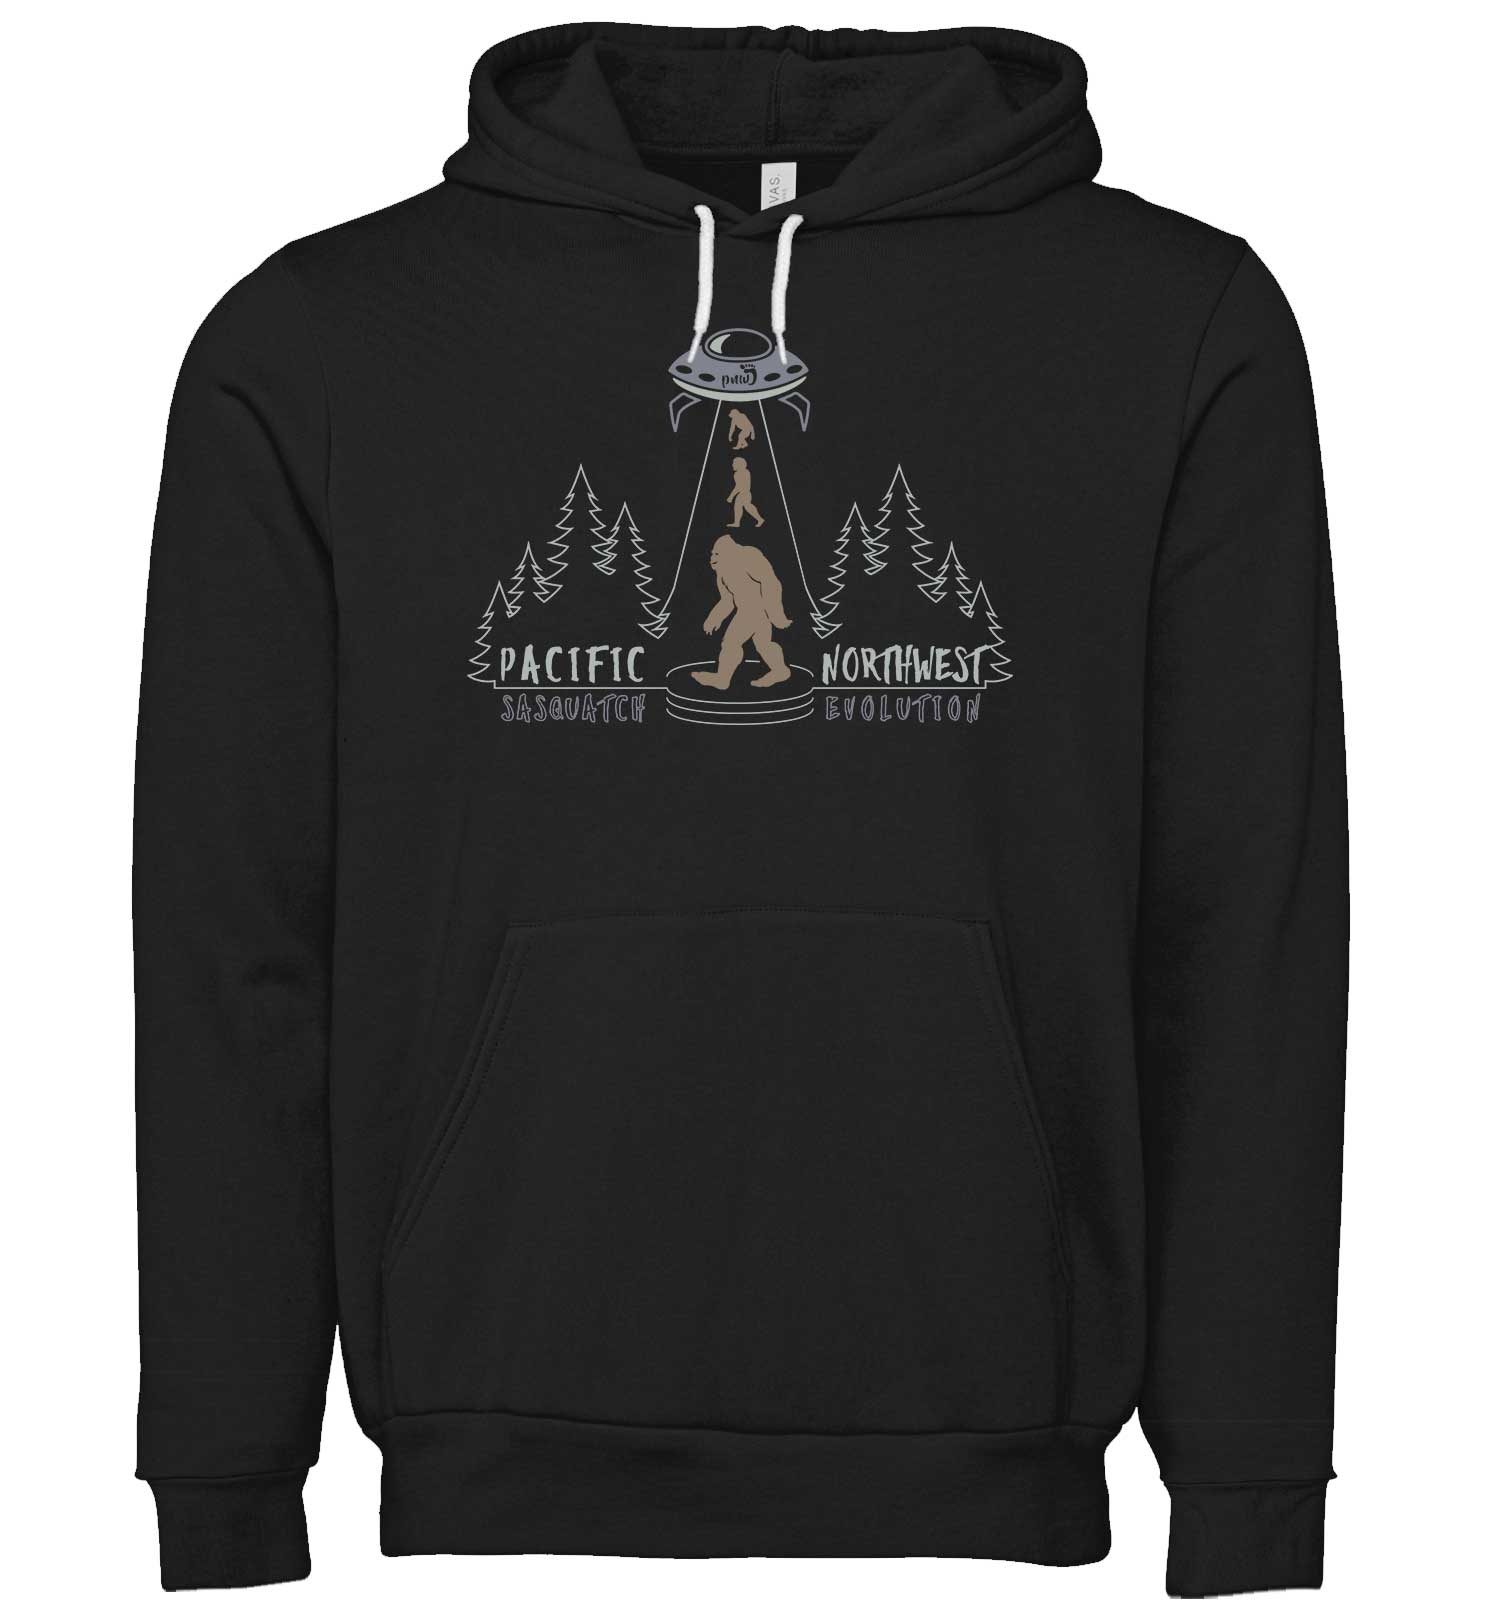 Sasquatch Evolution - Sweatshirt - Hoodie - Black - Front - PNW Journey